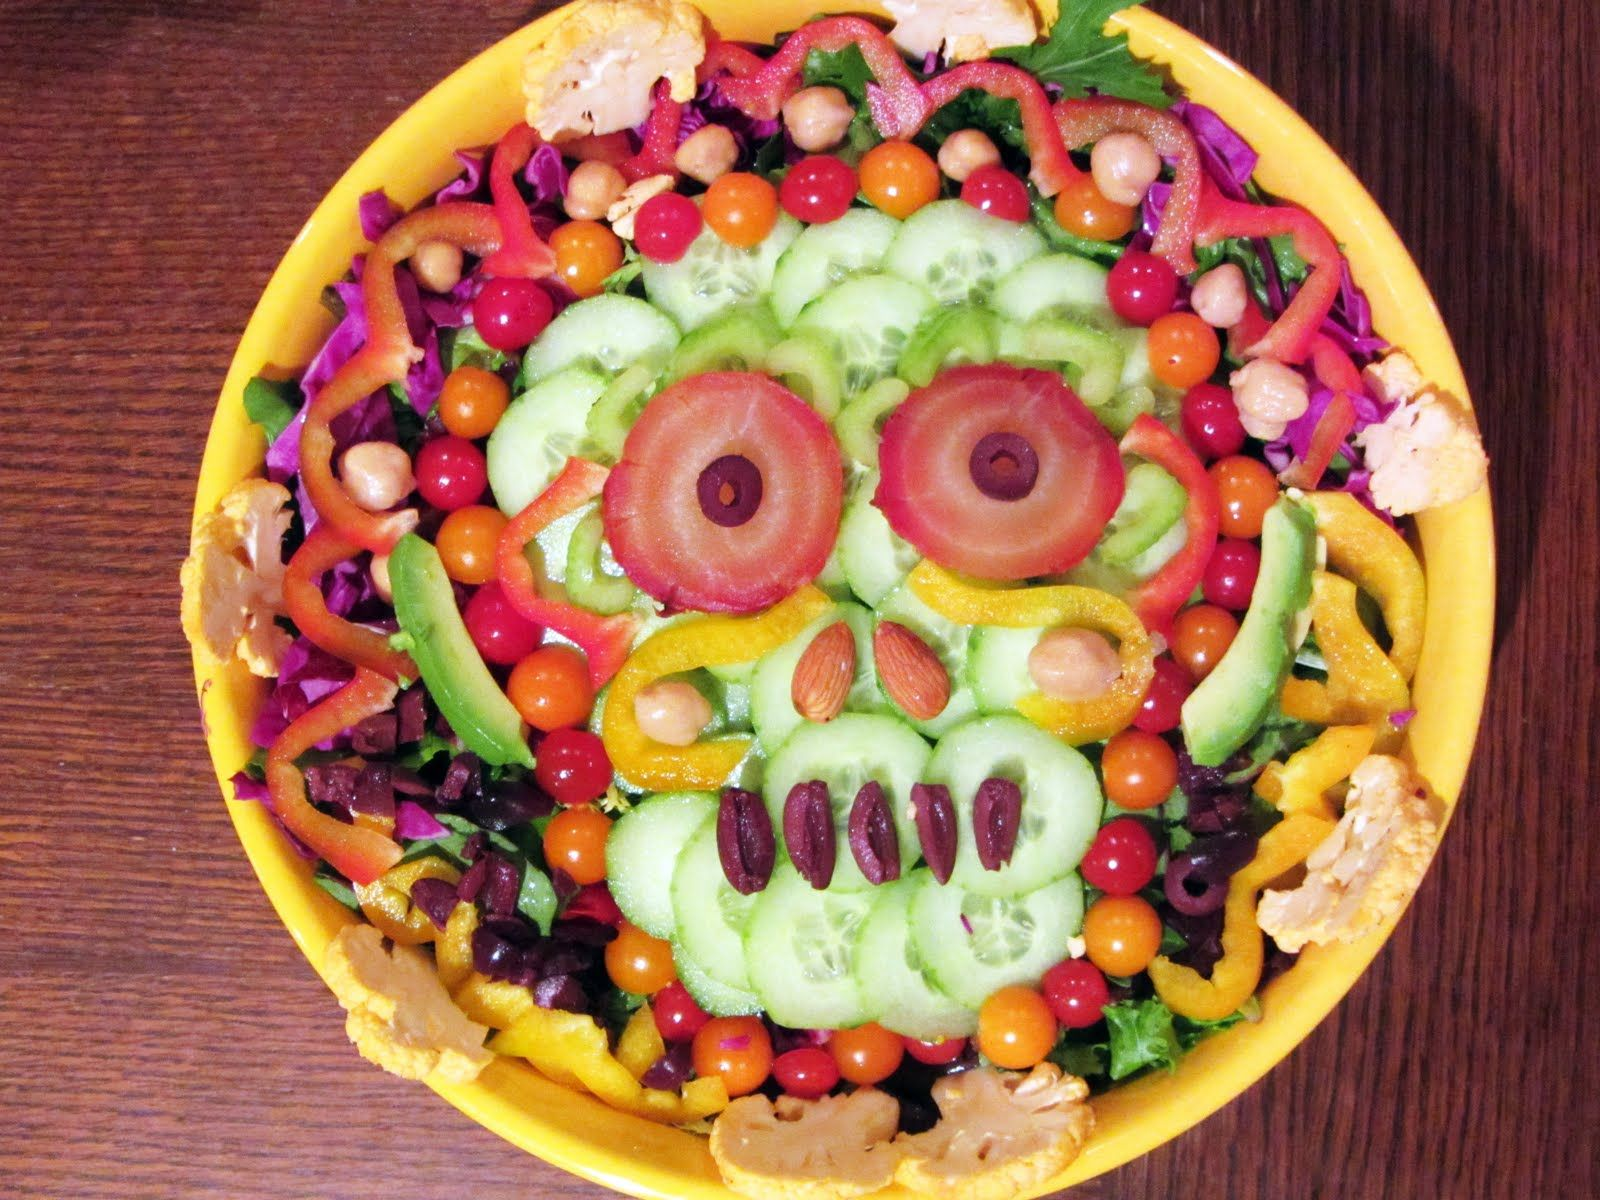 Vegan Eats & Treats!: Day of the Dead Salad! #diadelosmuertos ...